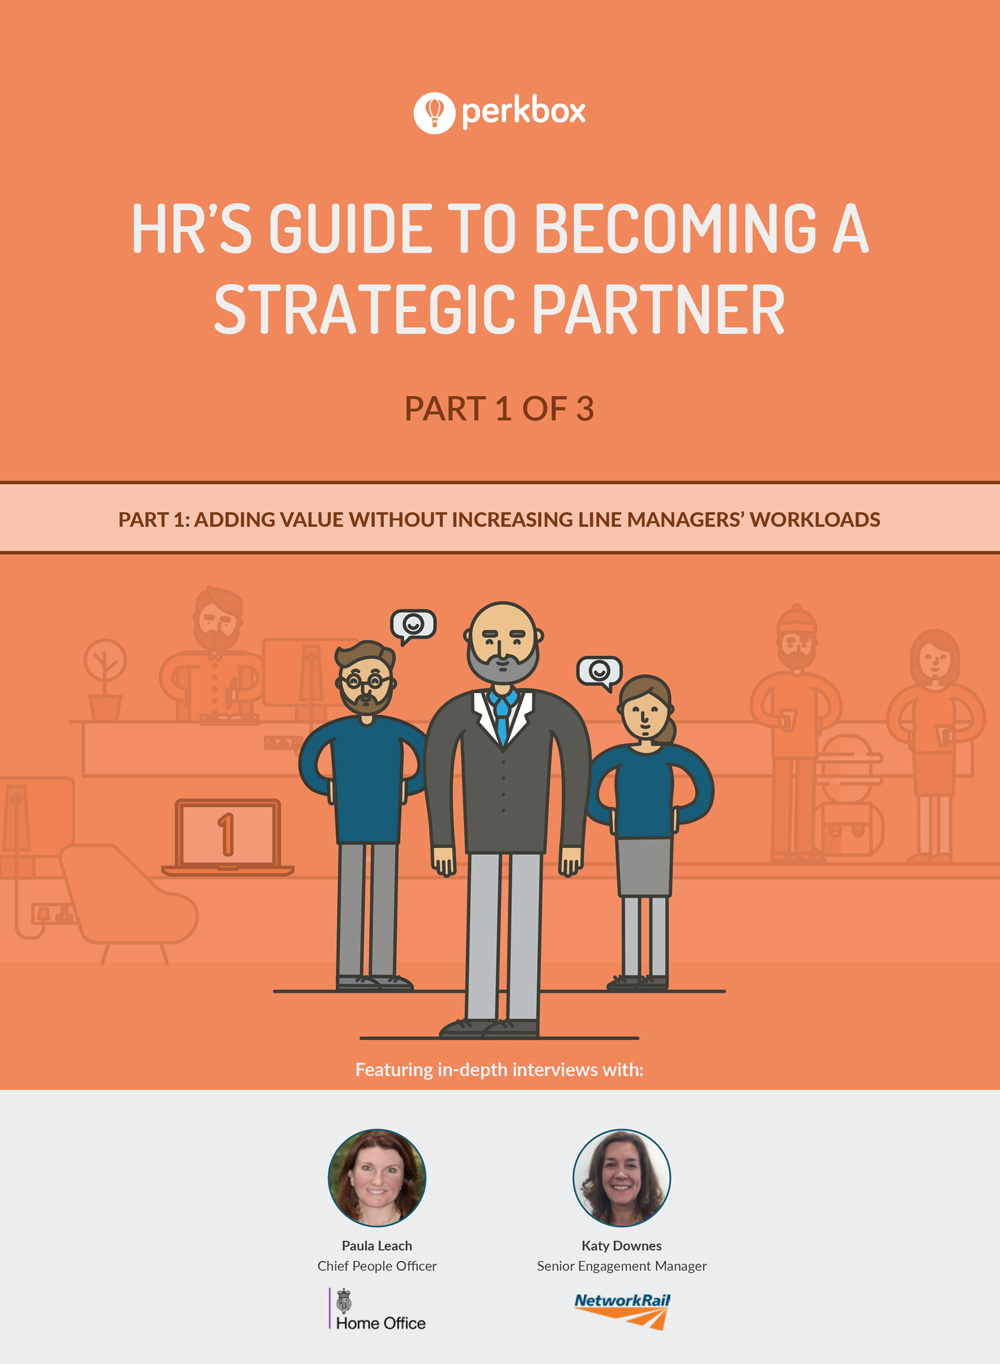 Check out our latest ebook on HR becoming a strategic partner: